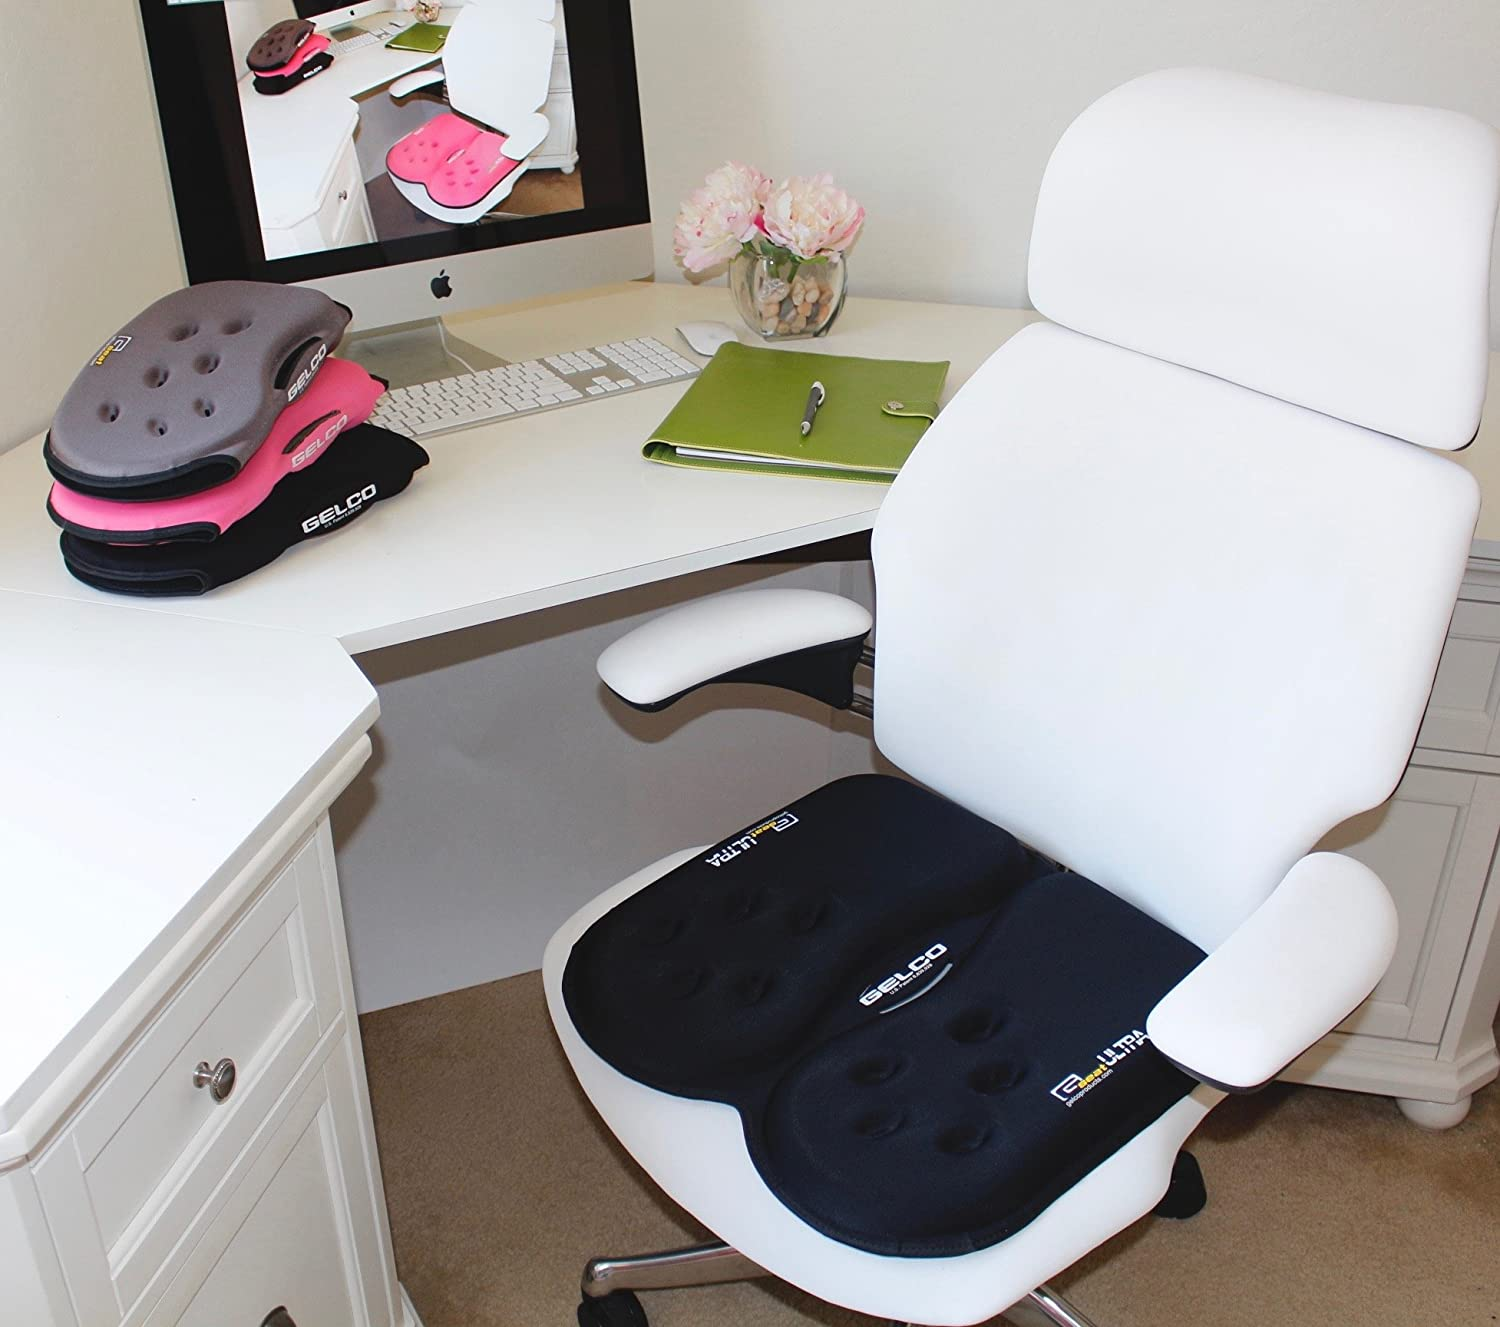 Amazon.com: New! GSeat Ultra Gel And Foam Seat Cushion For  Chair Car Office Commute Airplane Wheelchair Sciatica Coccyx Tailbone Chronic  Back Pain Relief ...